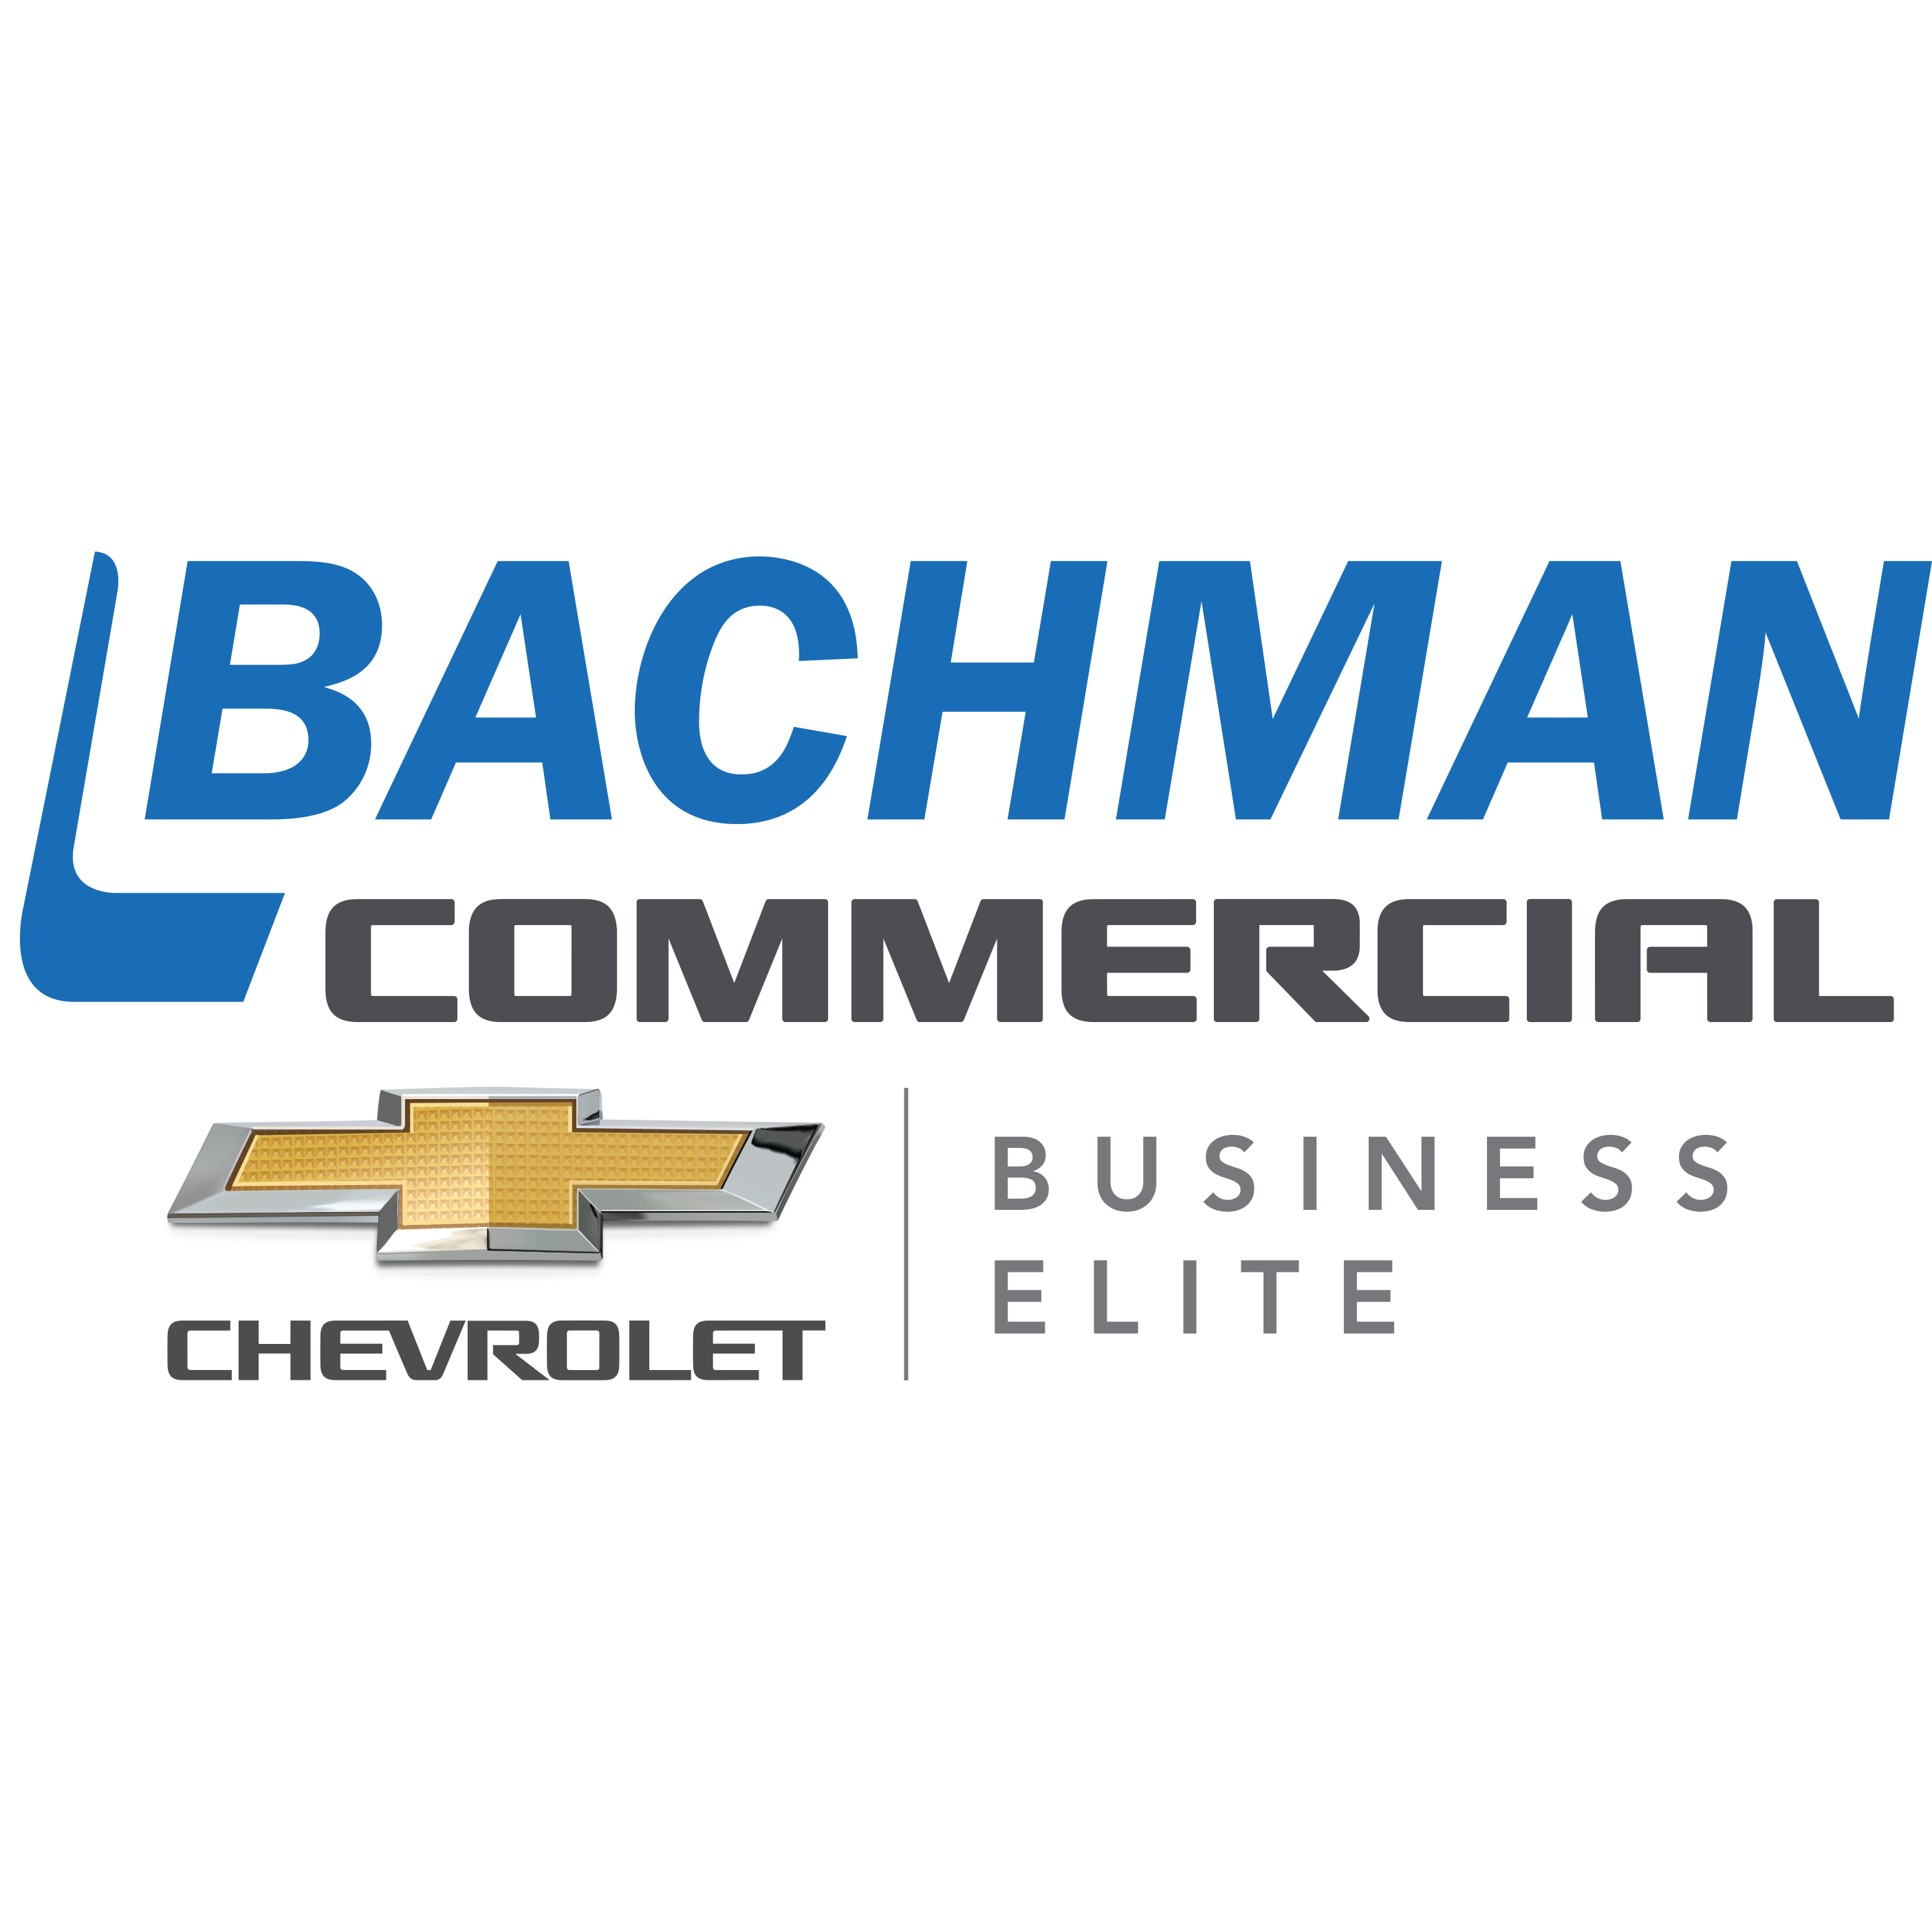 Bachman Commercial image 5